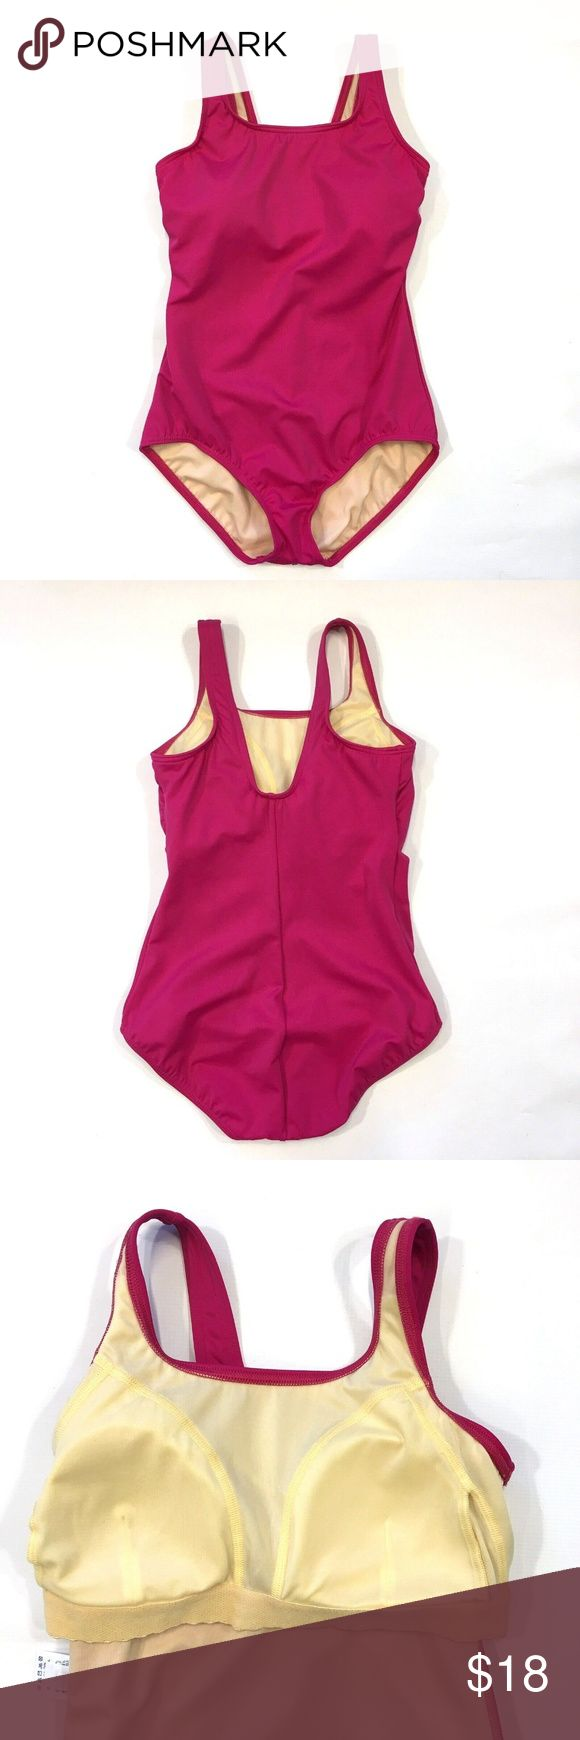 Lands End Dark Pink One Piece Swimsuit Modest 8 Woman's size 8  Lands End on…